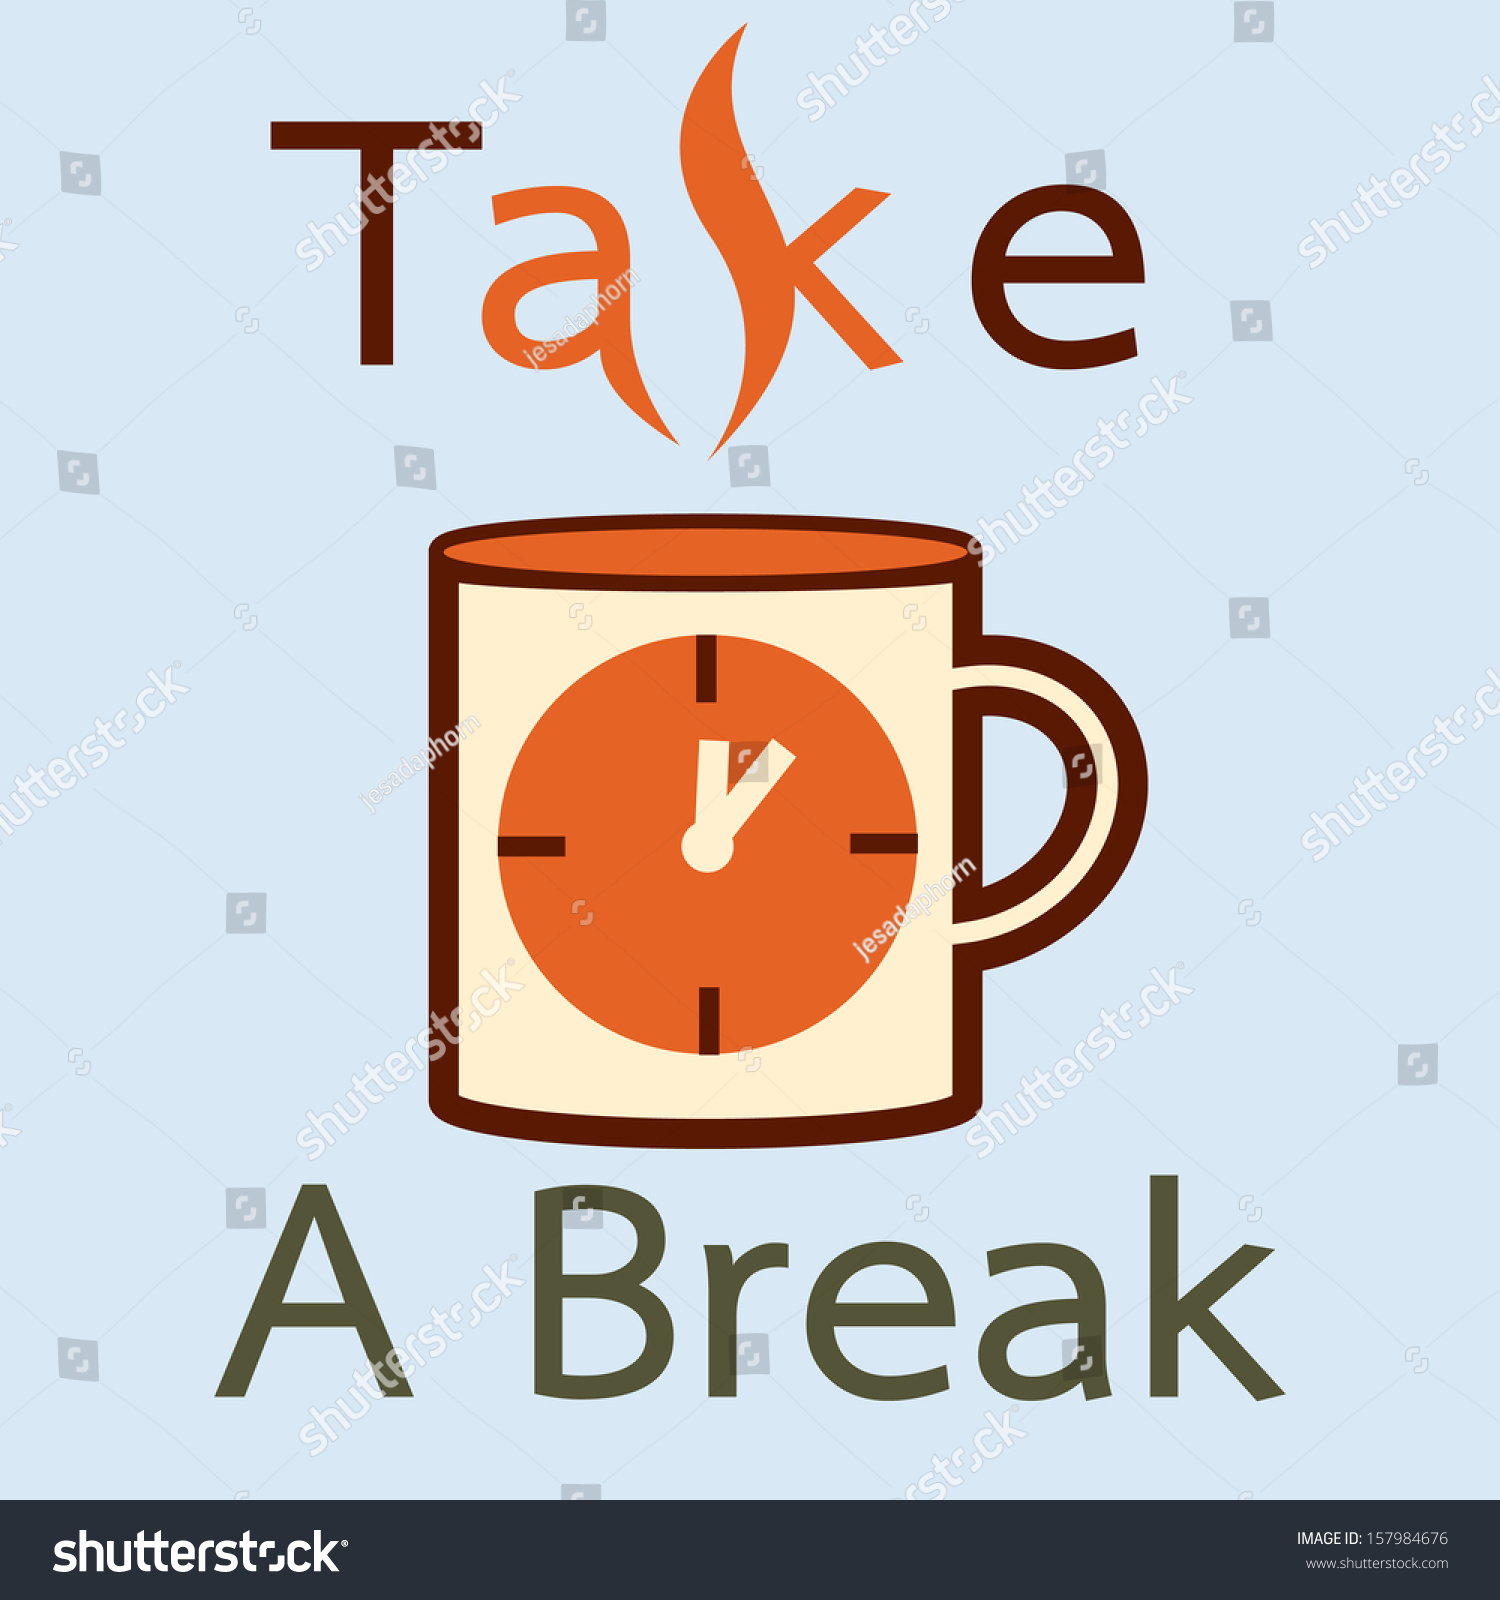 Take Break Coffee Time Concept Vector Stock Vector HD (Royalty Free ...